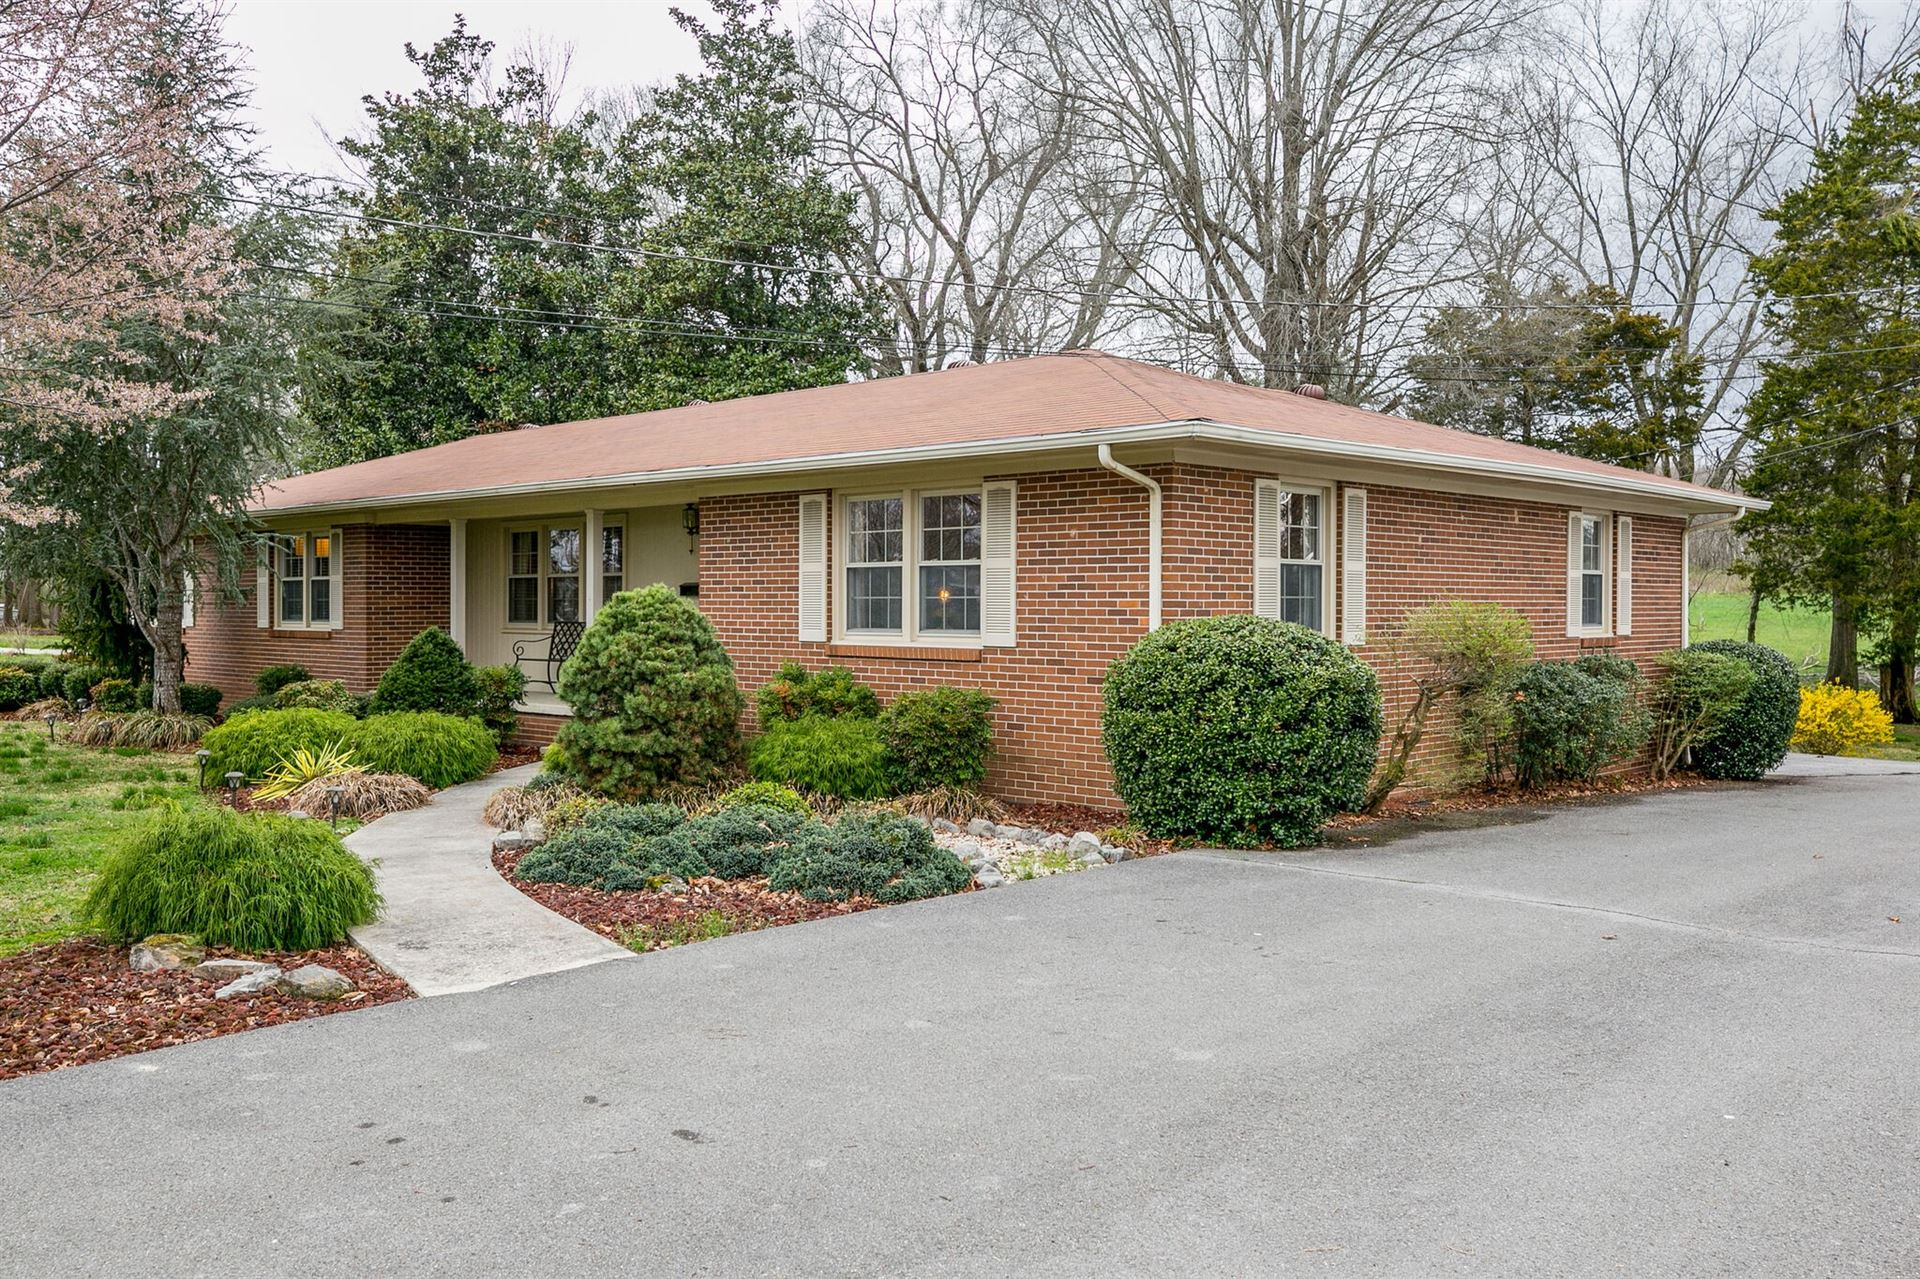 411 Whaley St, Smithville, TN 37166 - MLS#: 2236827